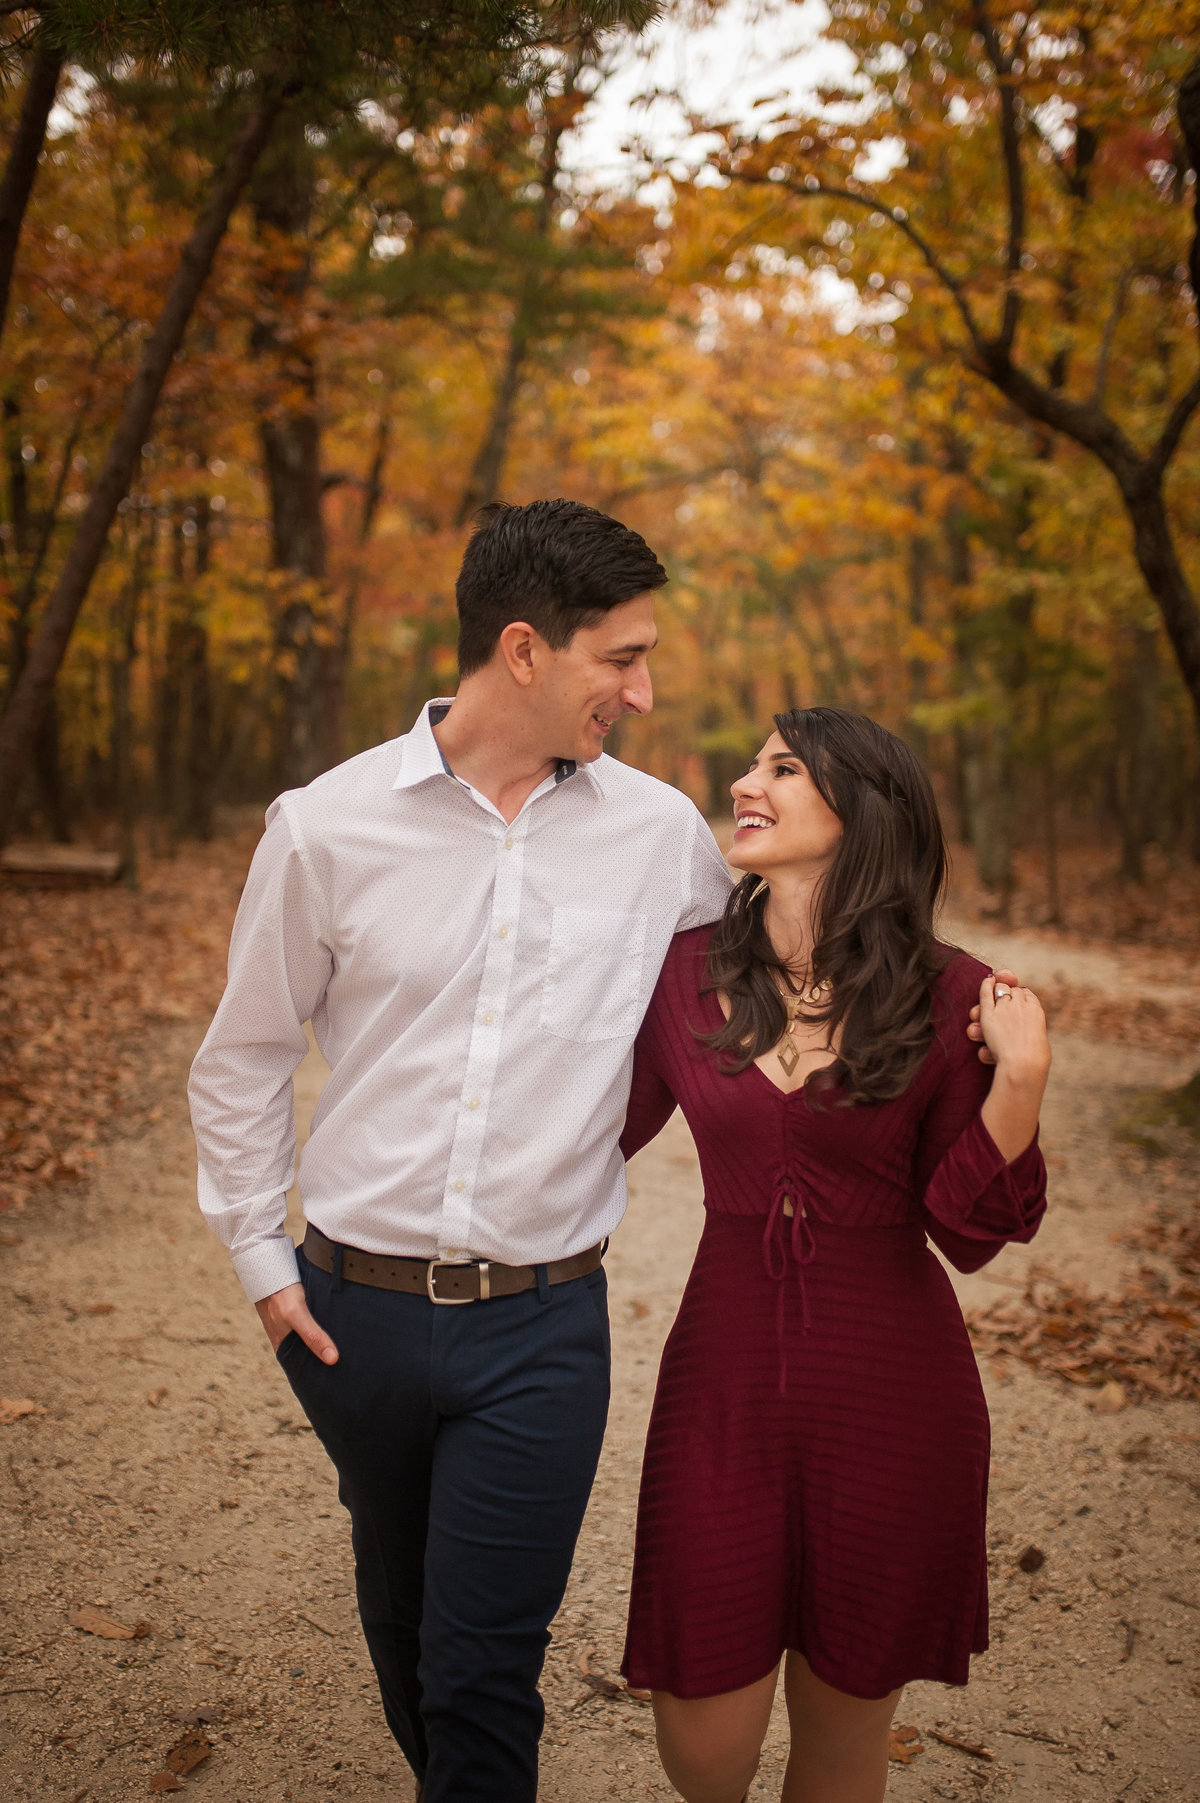 monika+bruno_engaged_jtp2018-82